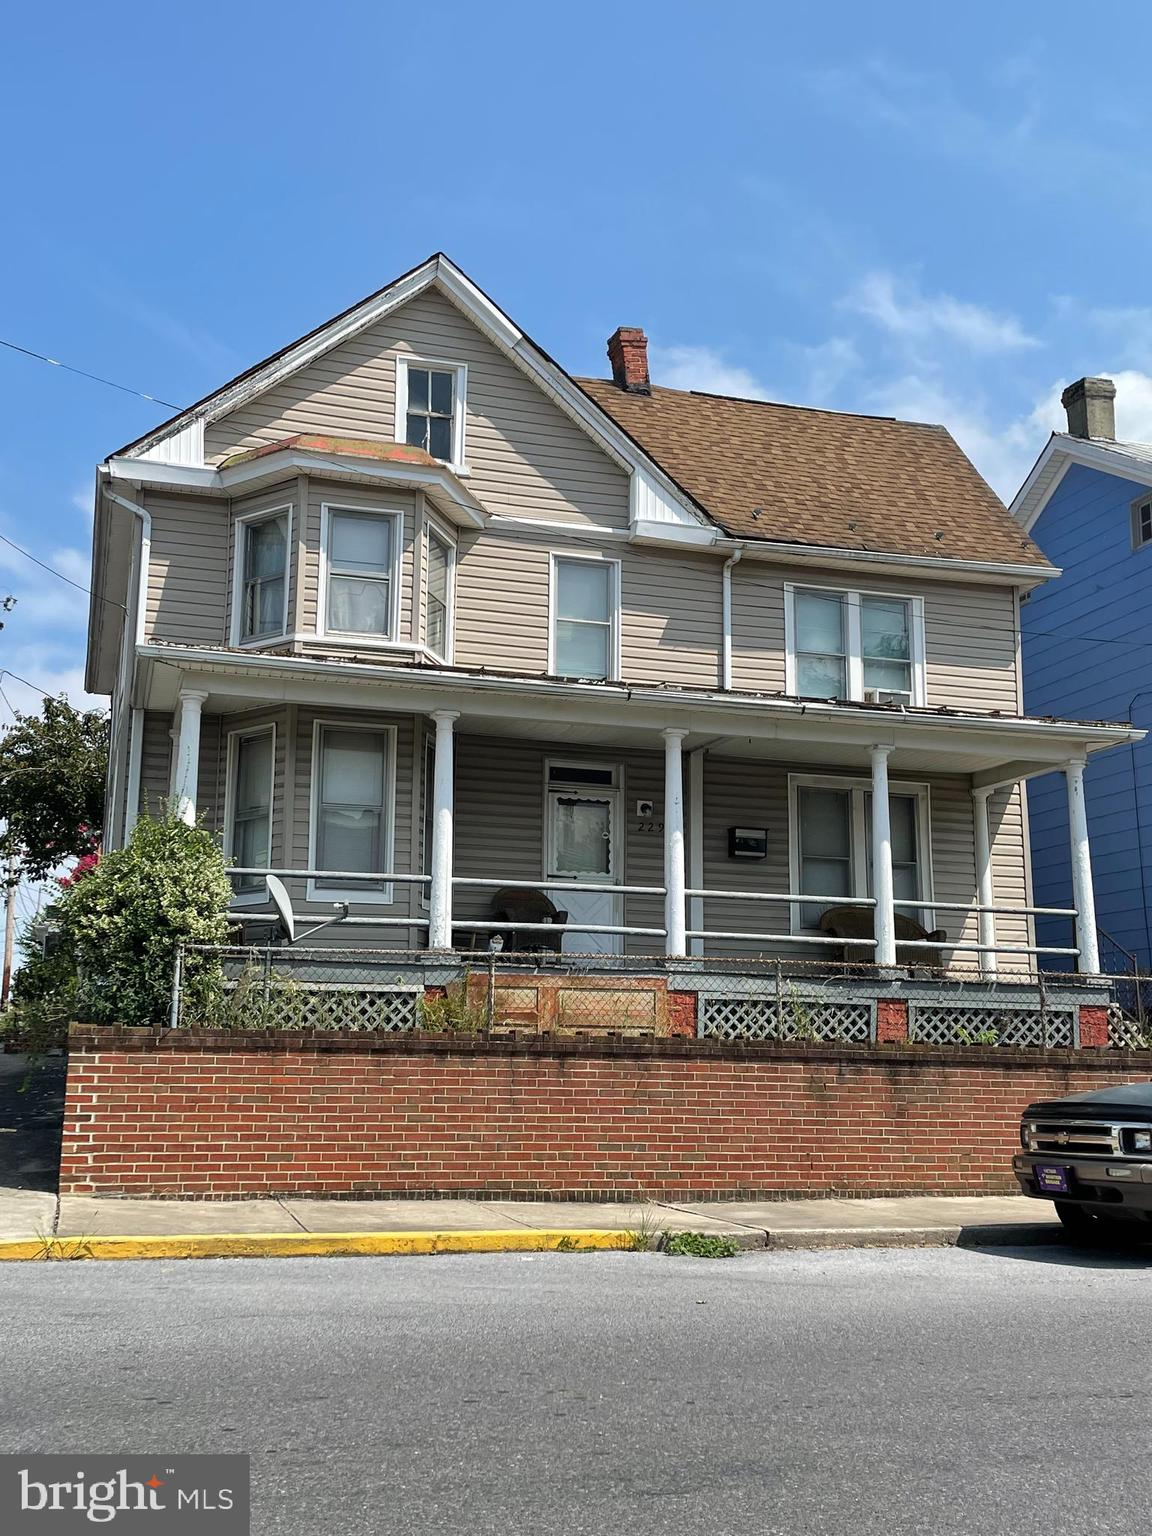 This large 4 bedroom, 1 full bath colonial has a lot of great potential. Needs some updating but is